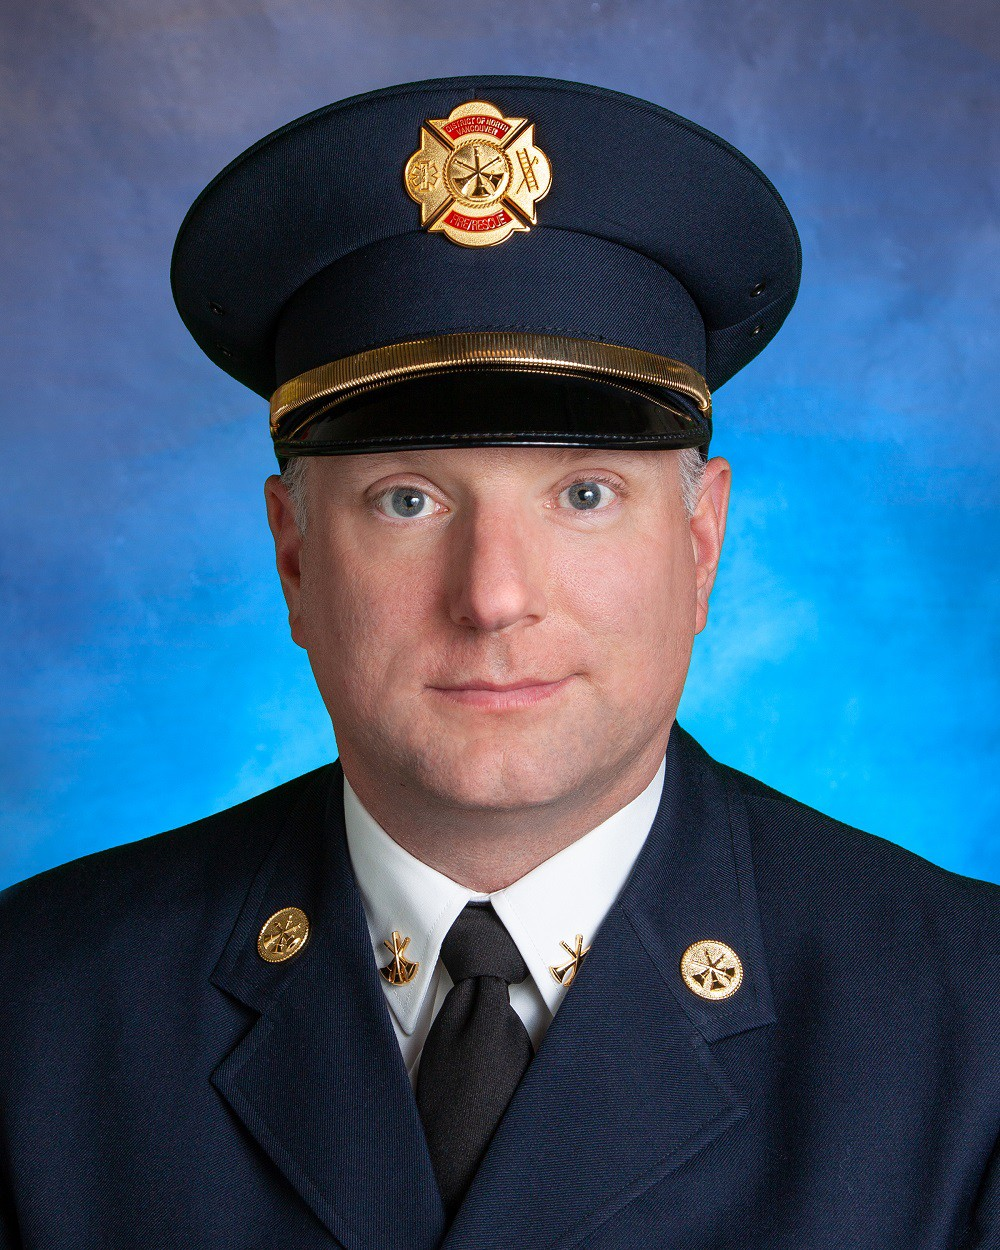 Assistant fire chief david dales